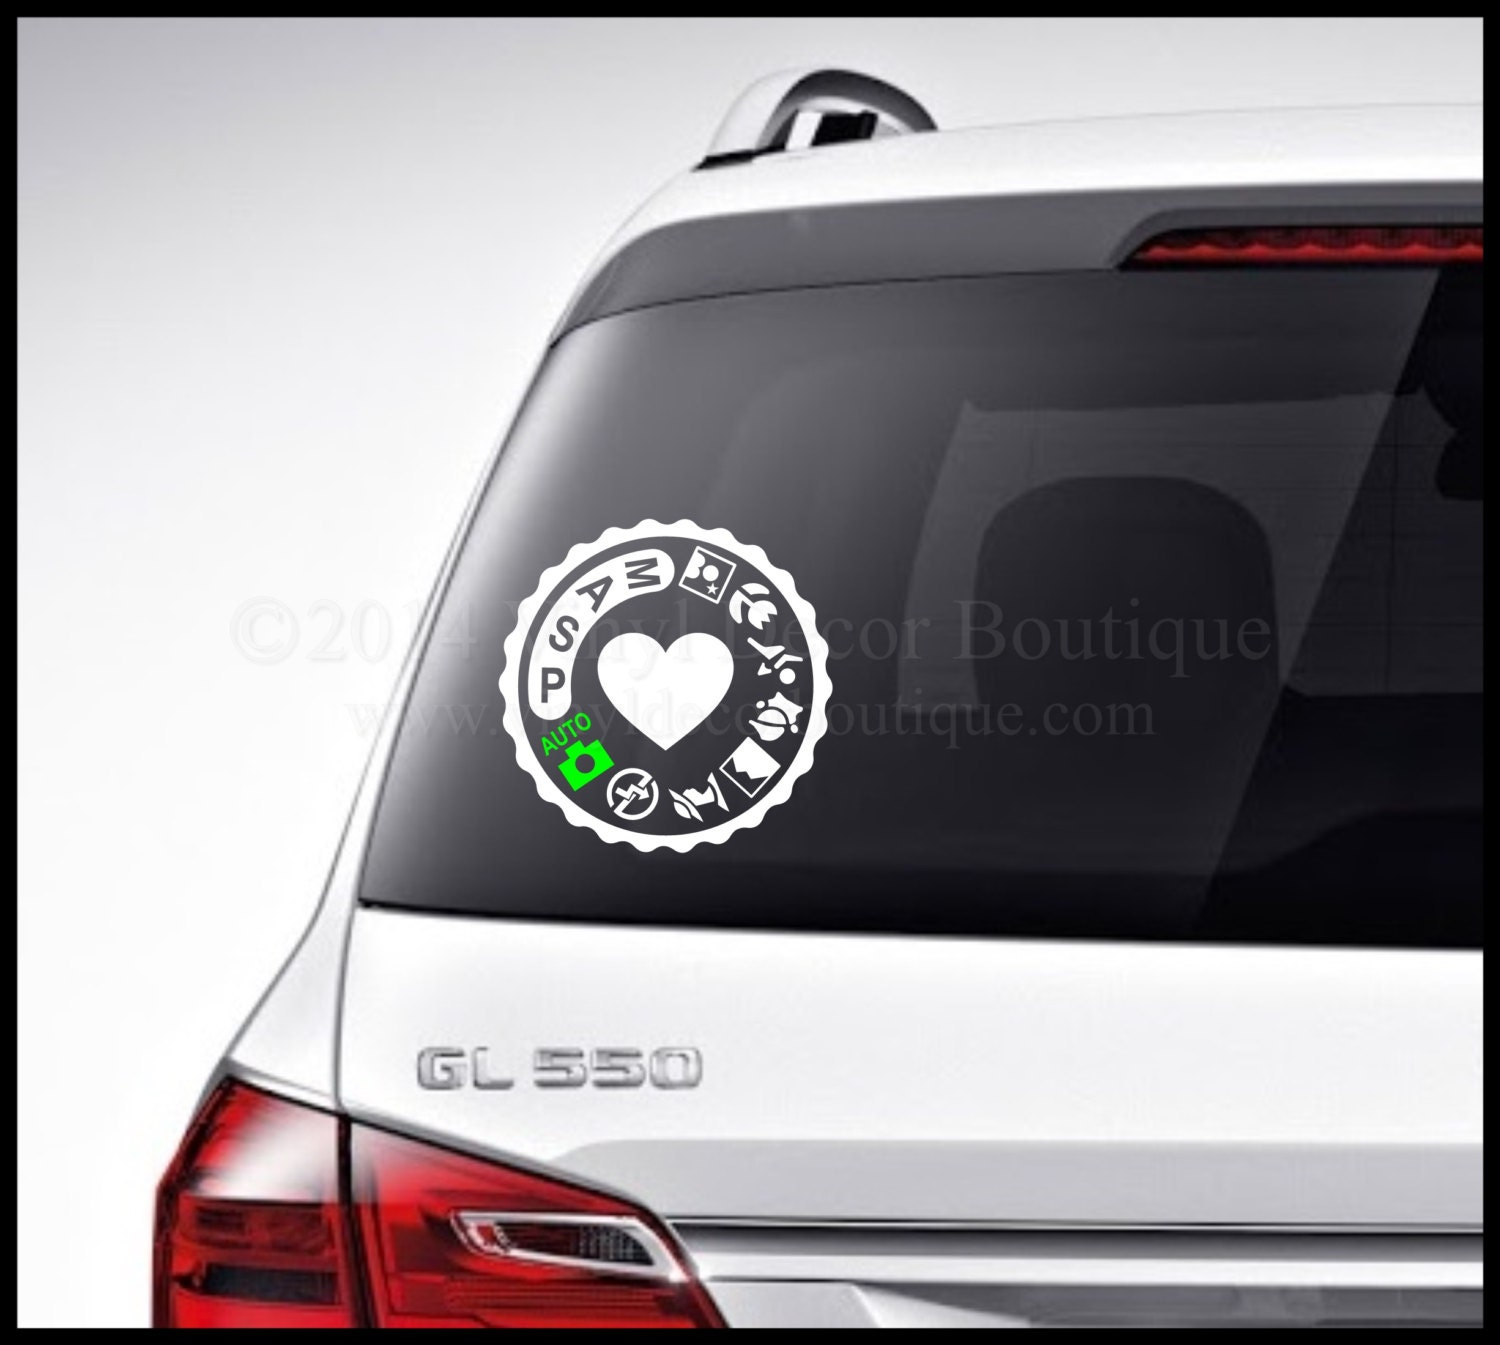 Photography Camera Car Decal Vinyl Lettering Bumper Sticker - Custom car bumper stickers